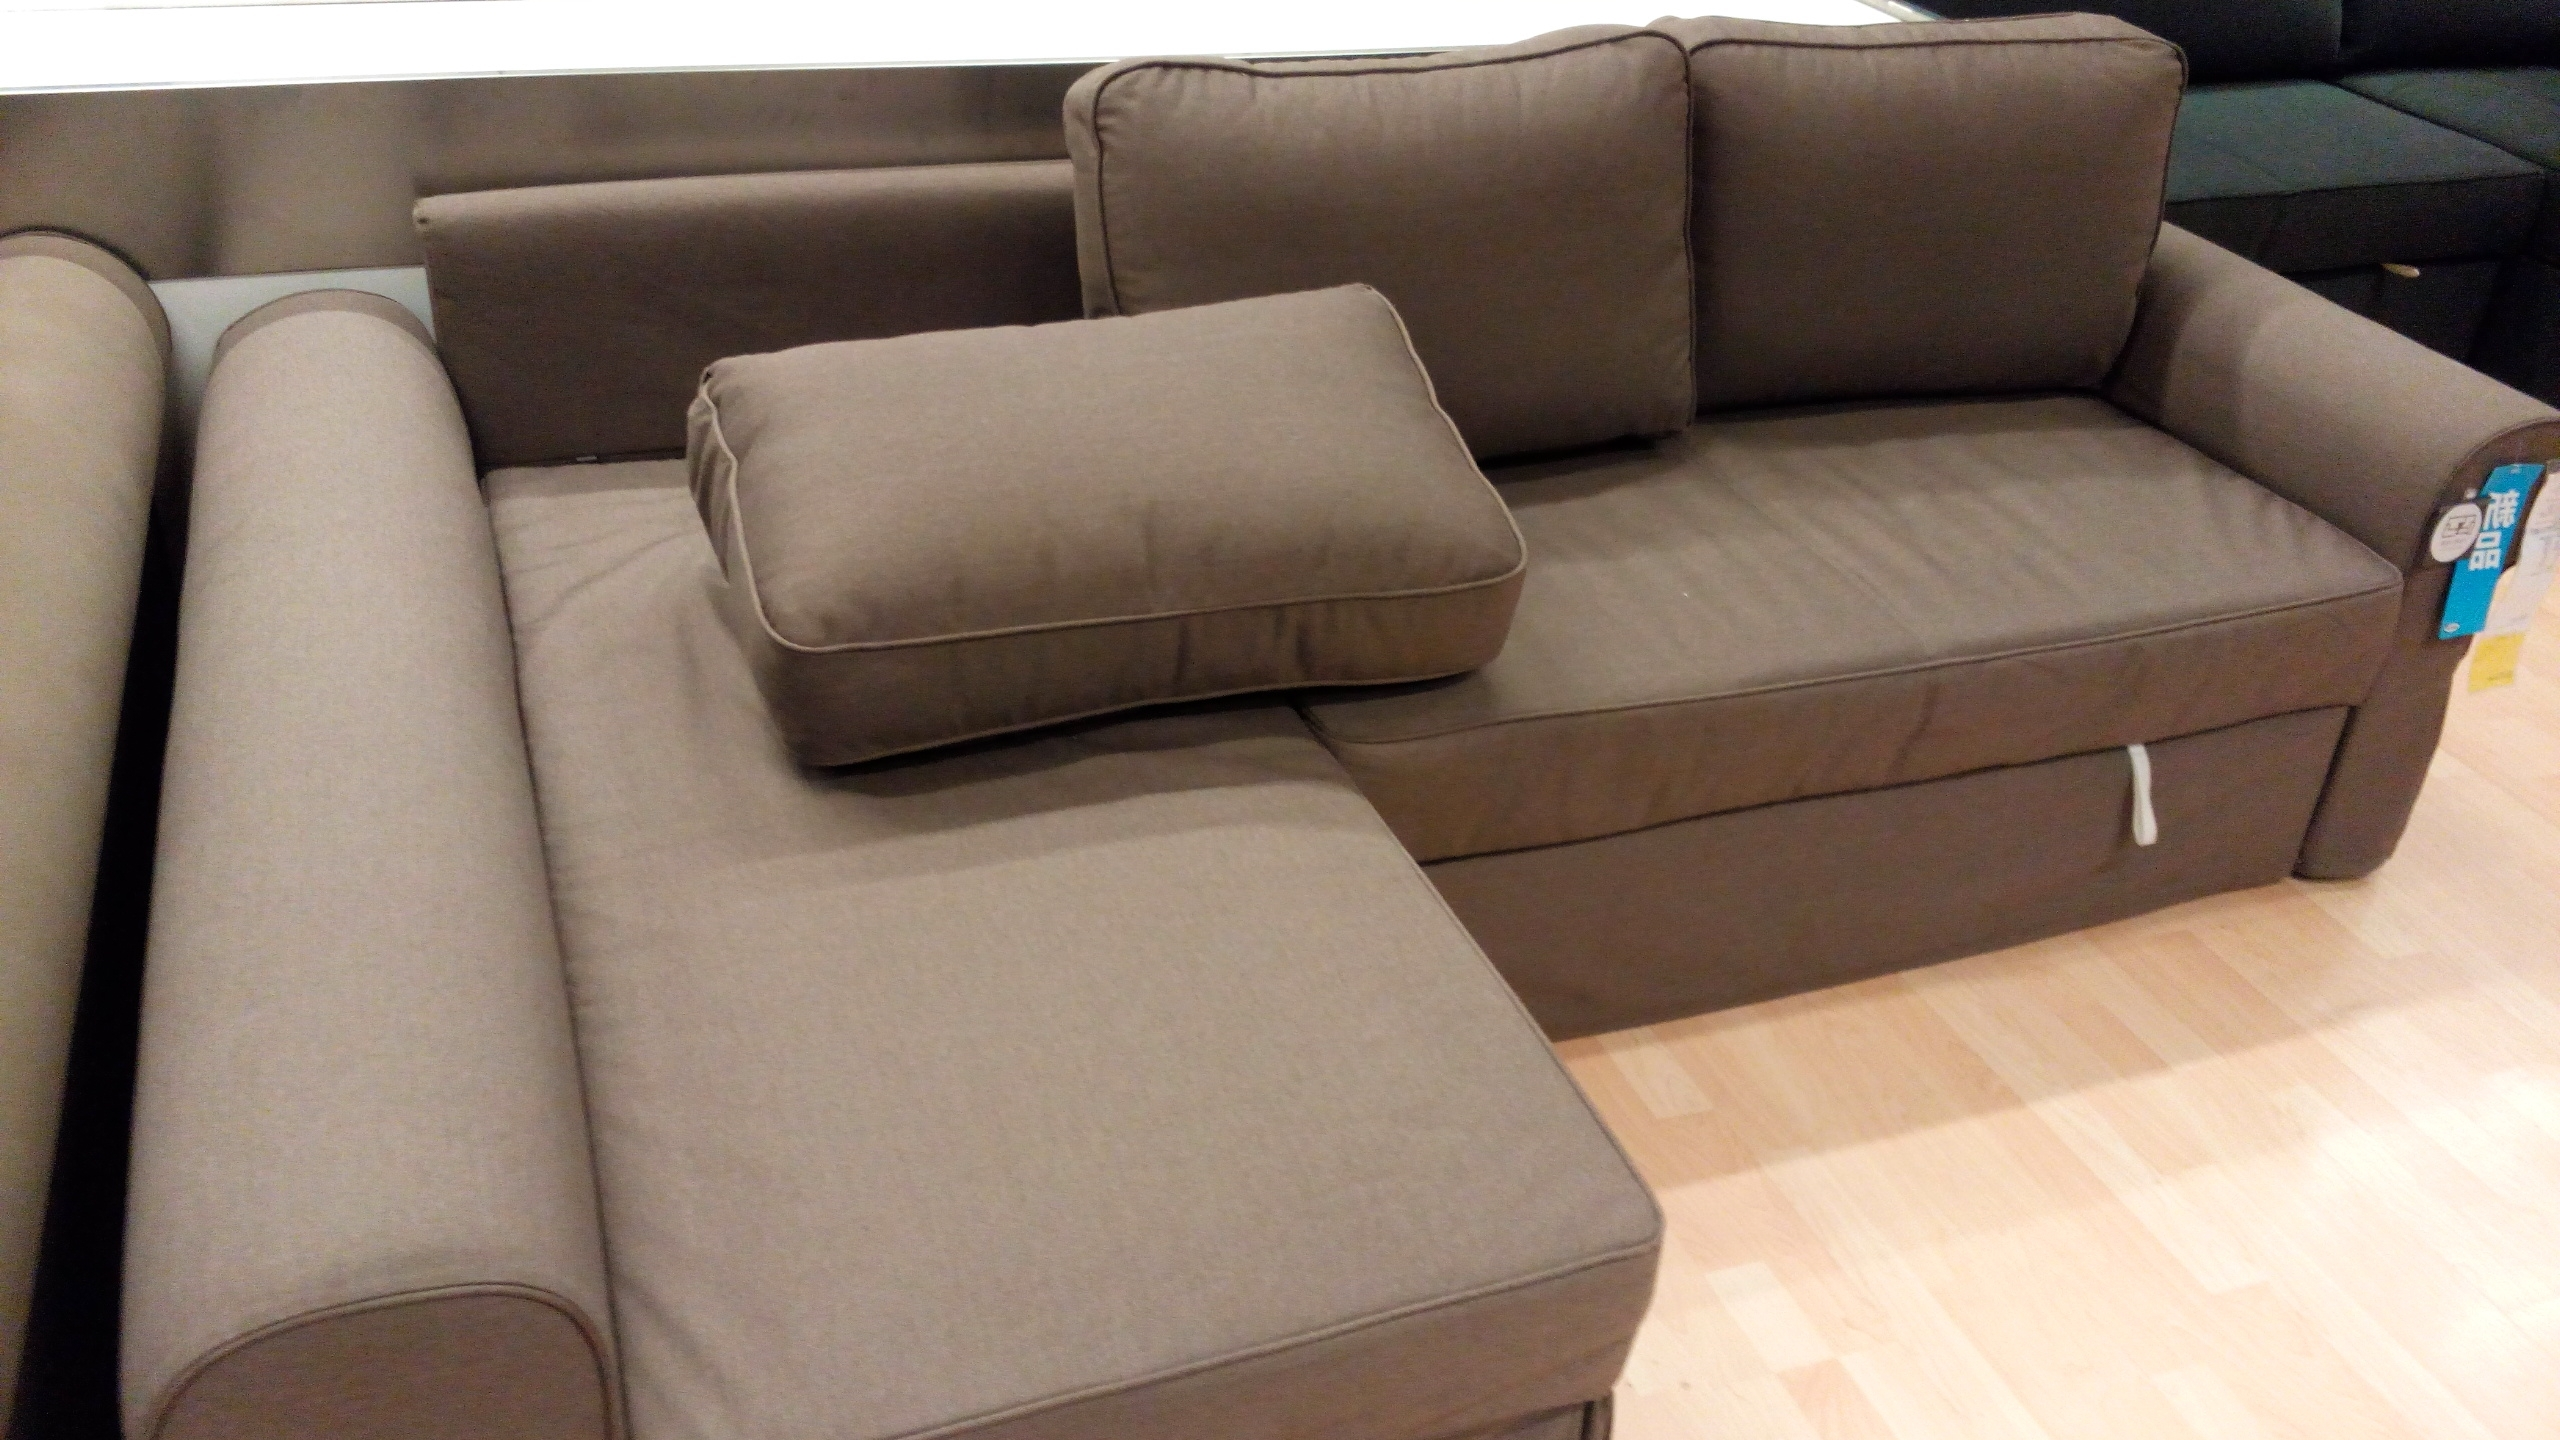 Sectional Sofa Design: Sectional Sofa Bed Ikea Best Design Sofa Regarding Most Popular Ikea Sectional Sofa Beds (View 13 of 20)